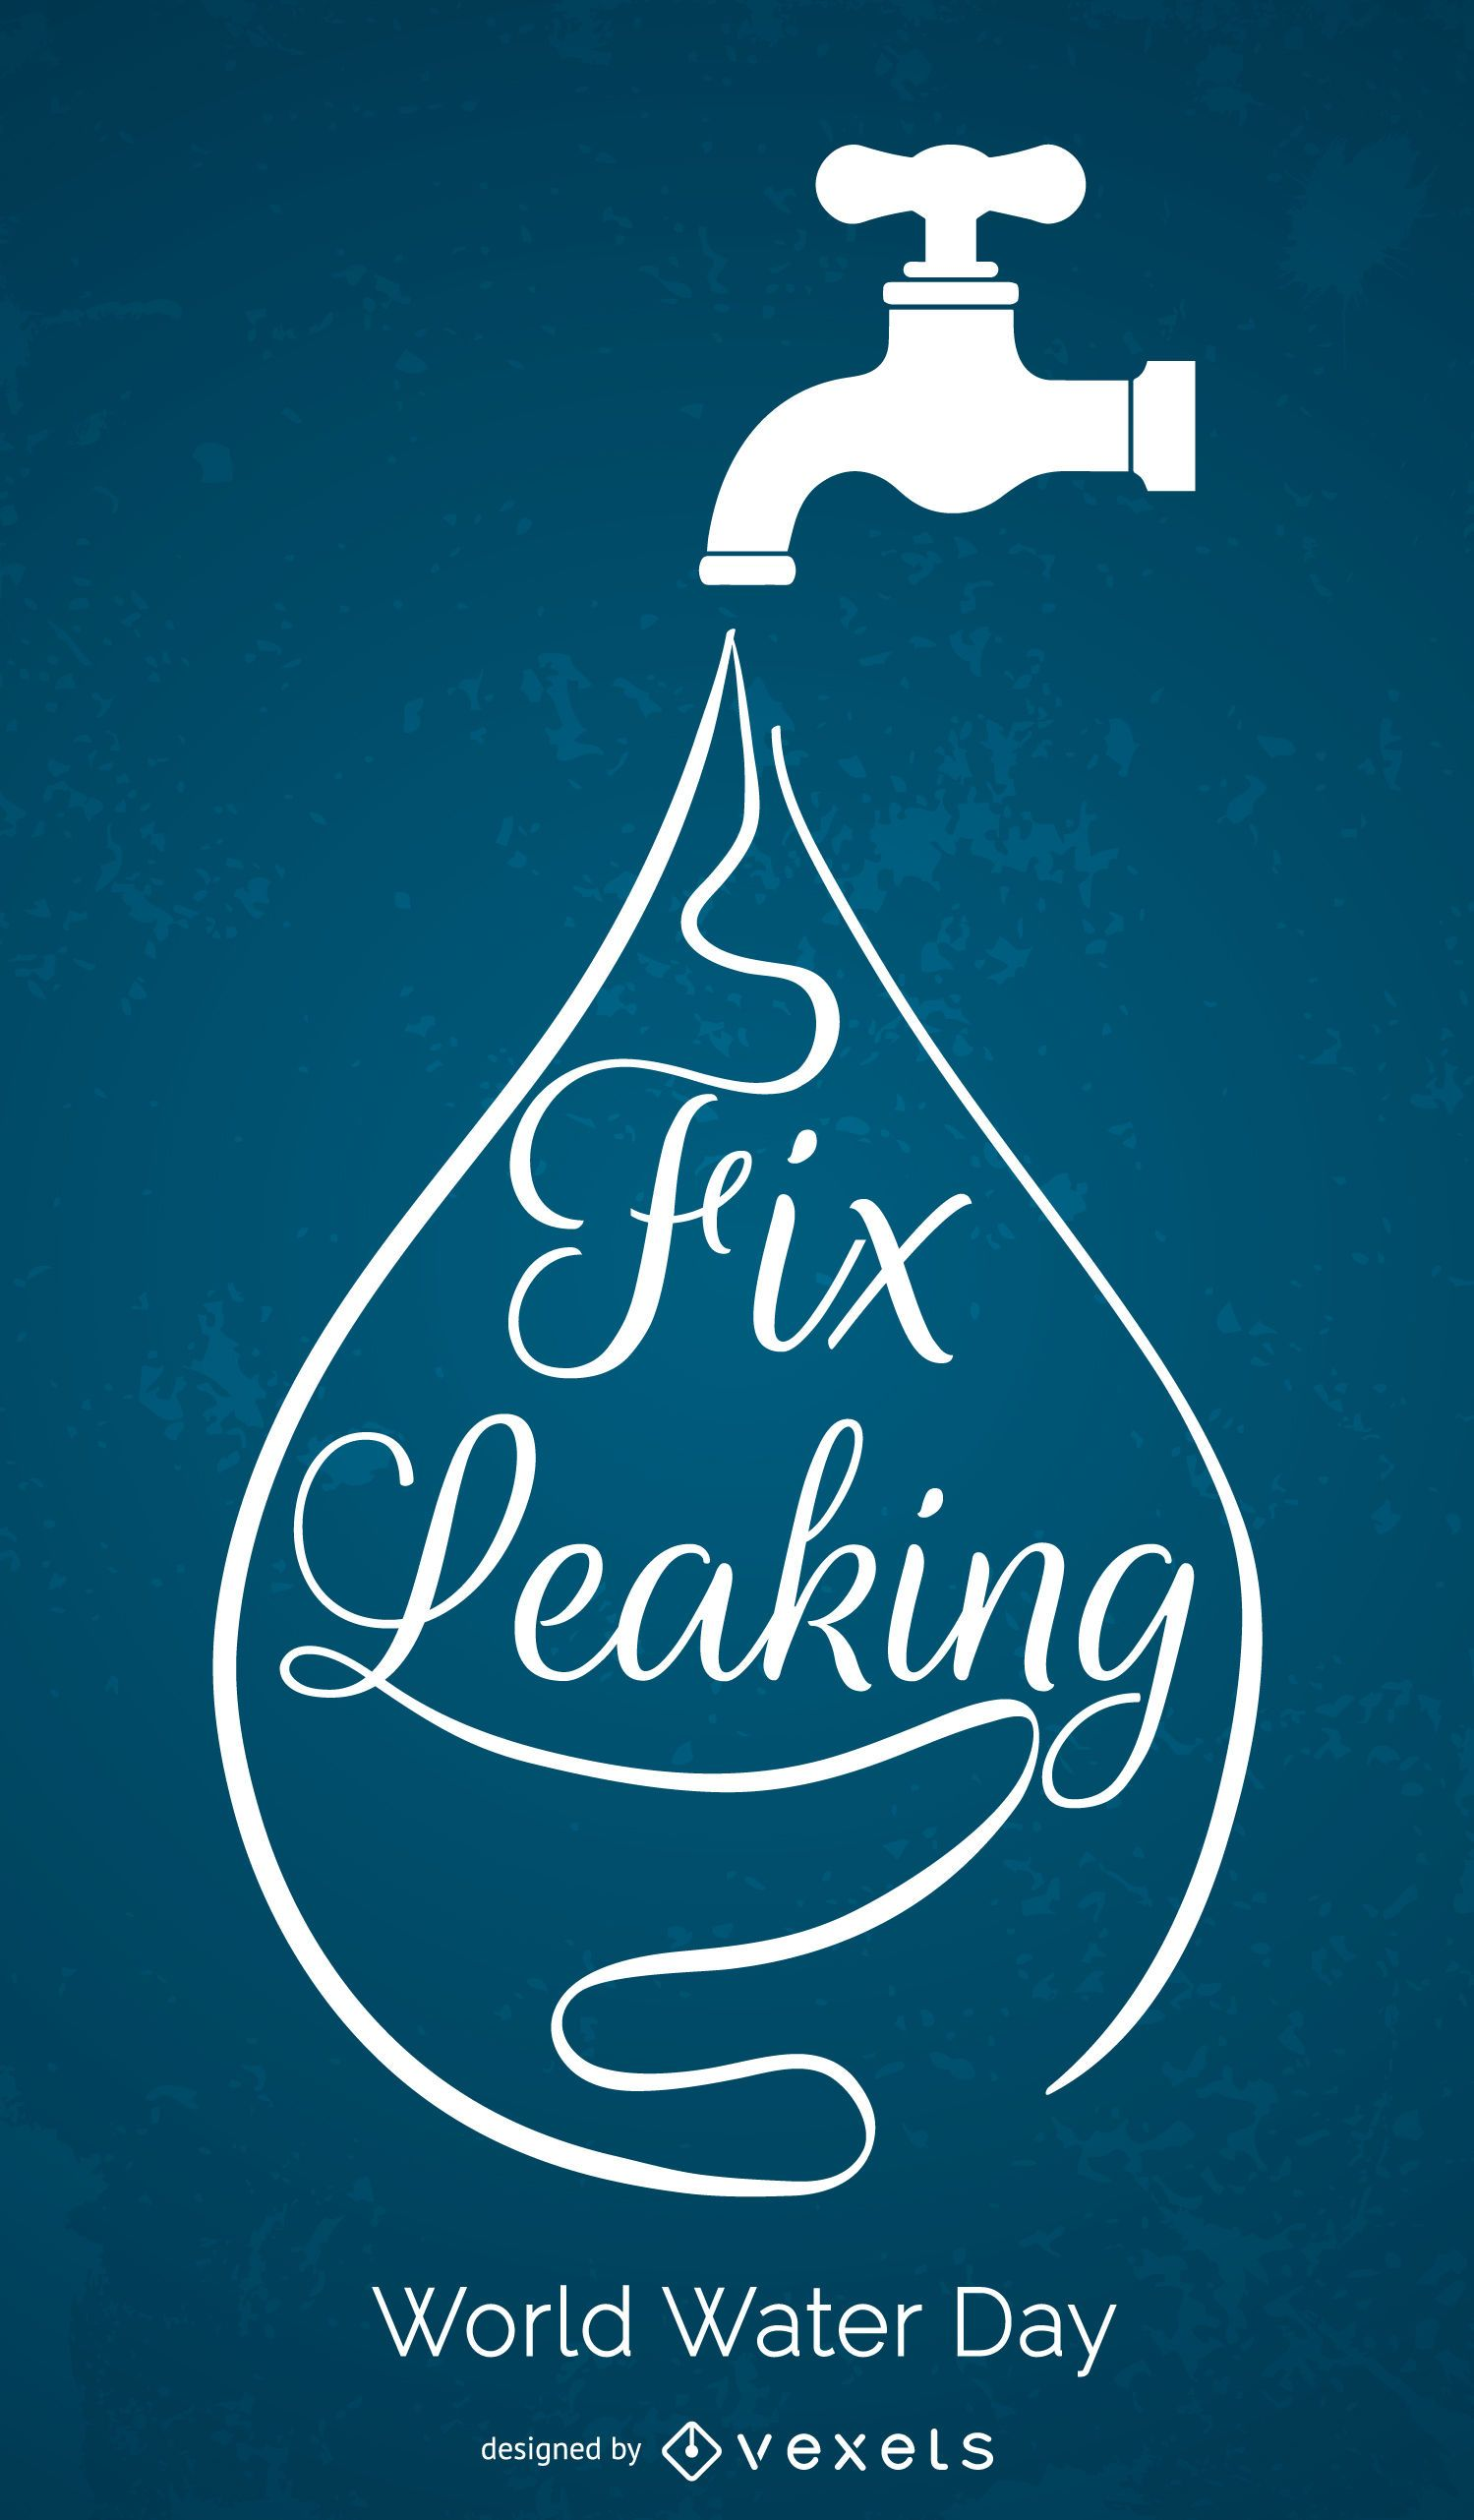 World Water Day - Fix leaking